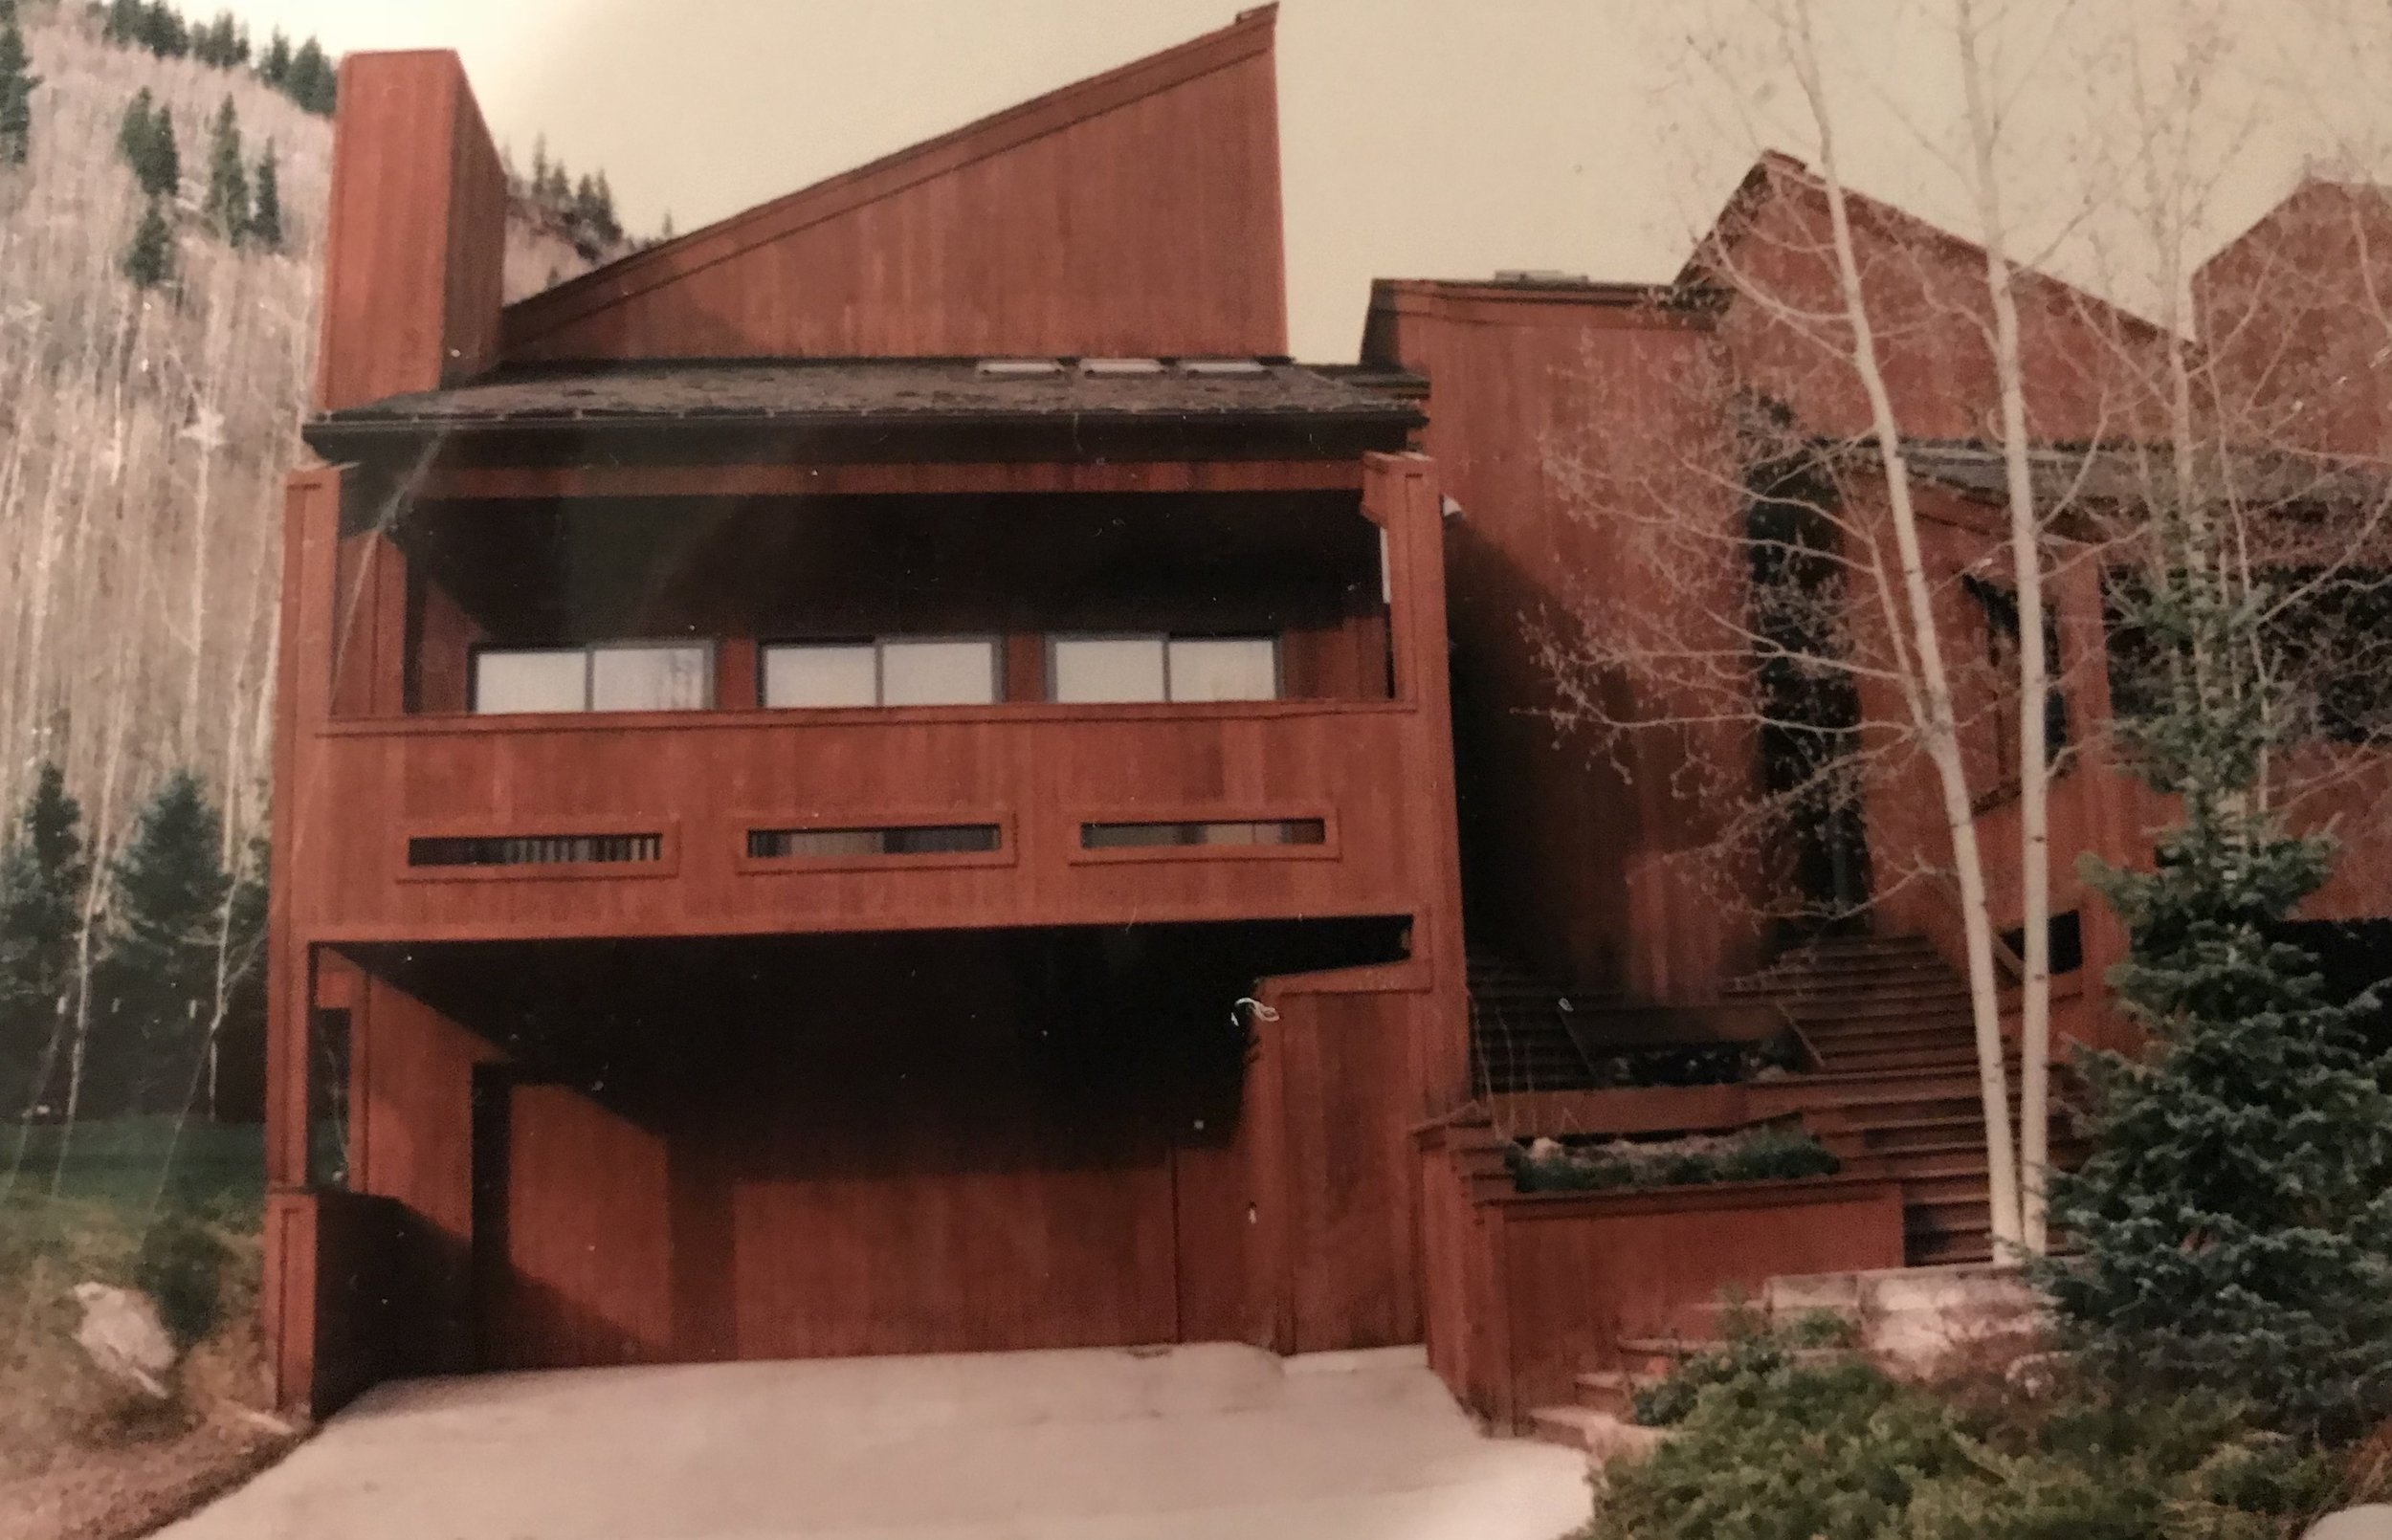 VAIL RESIDENTIAL -  Before